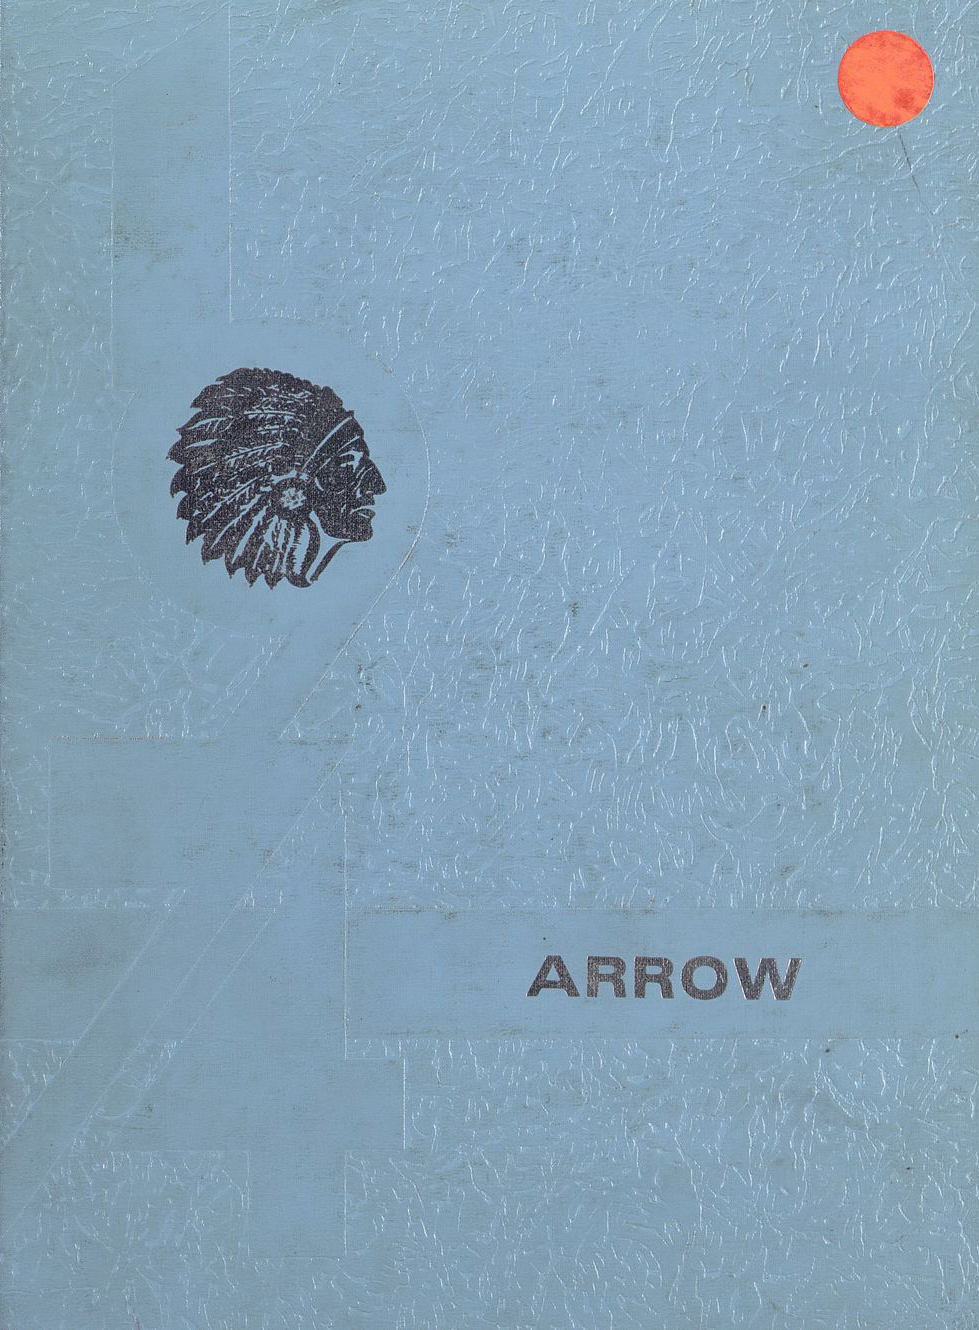 The Arrow 1974